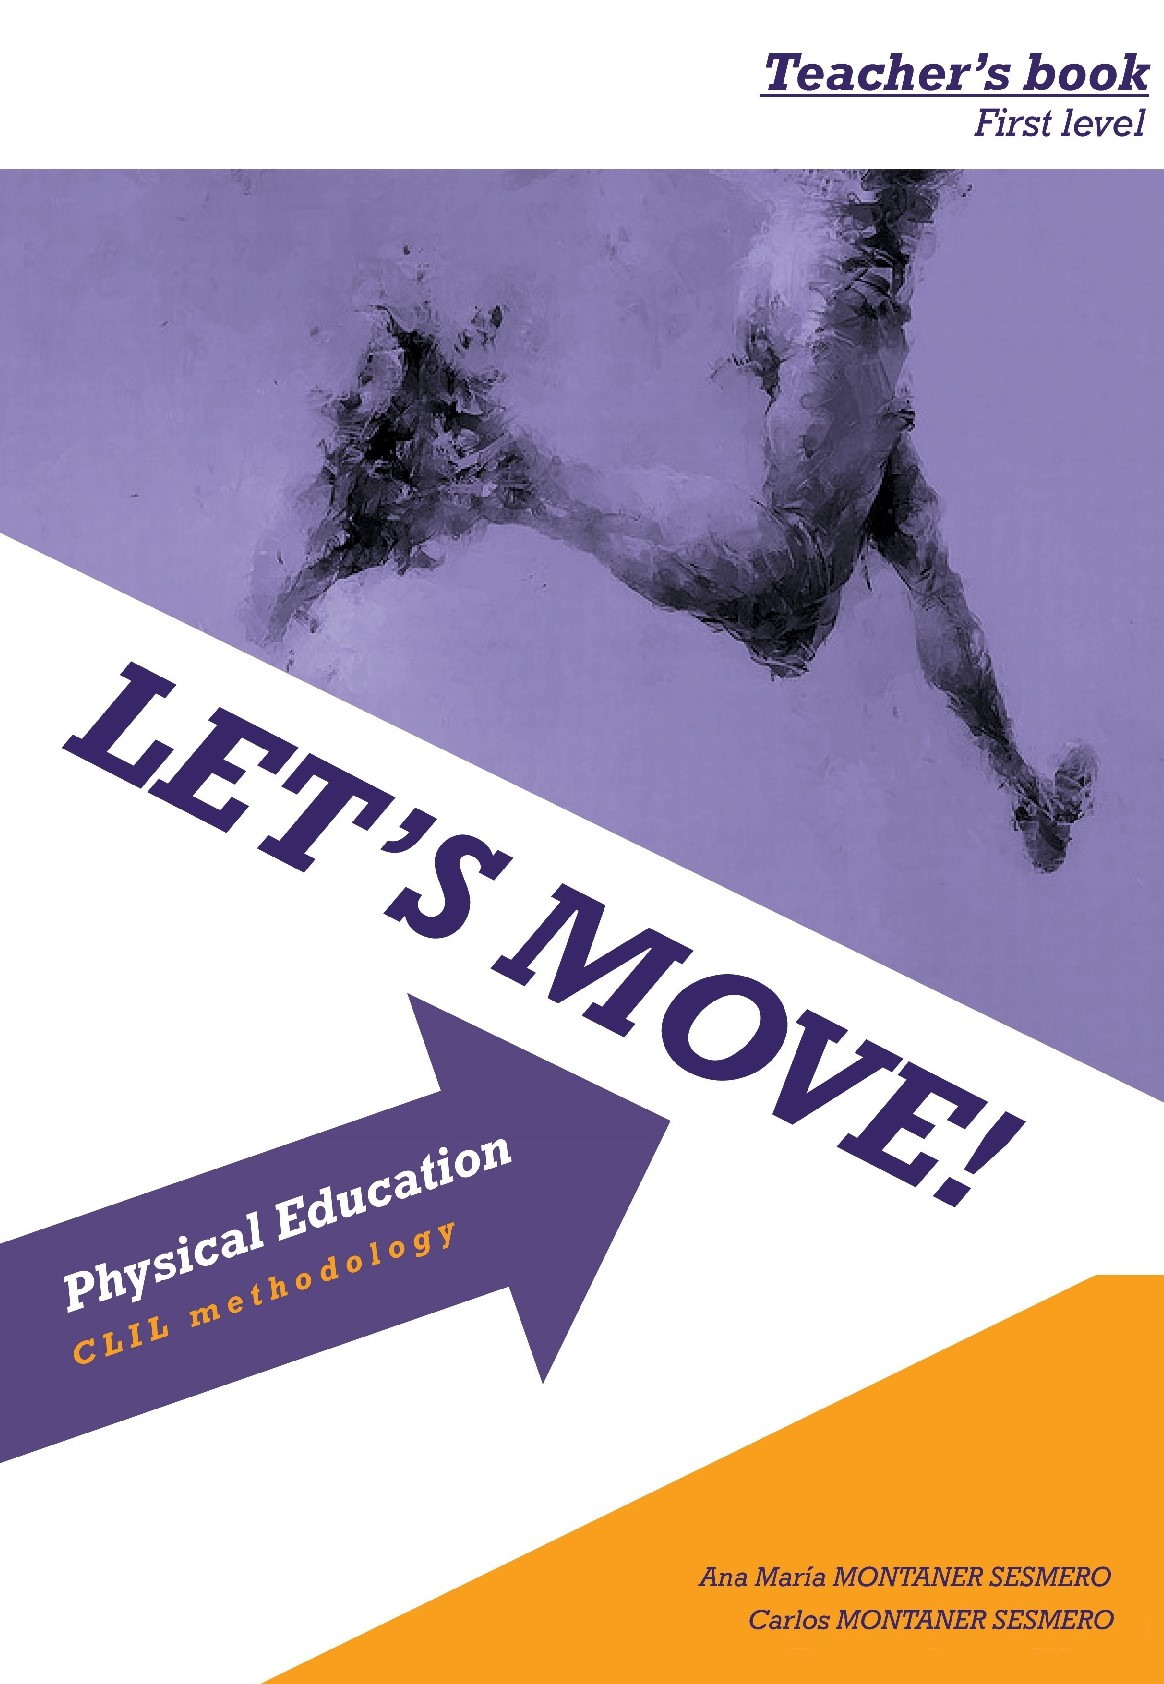 Let's move. Teacher's book 1º ESO